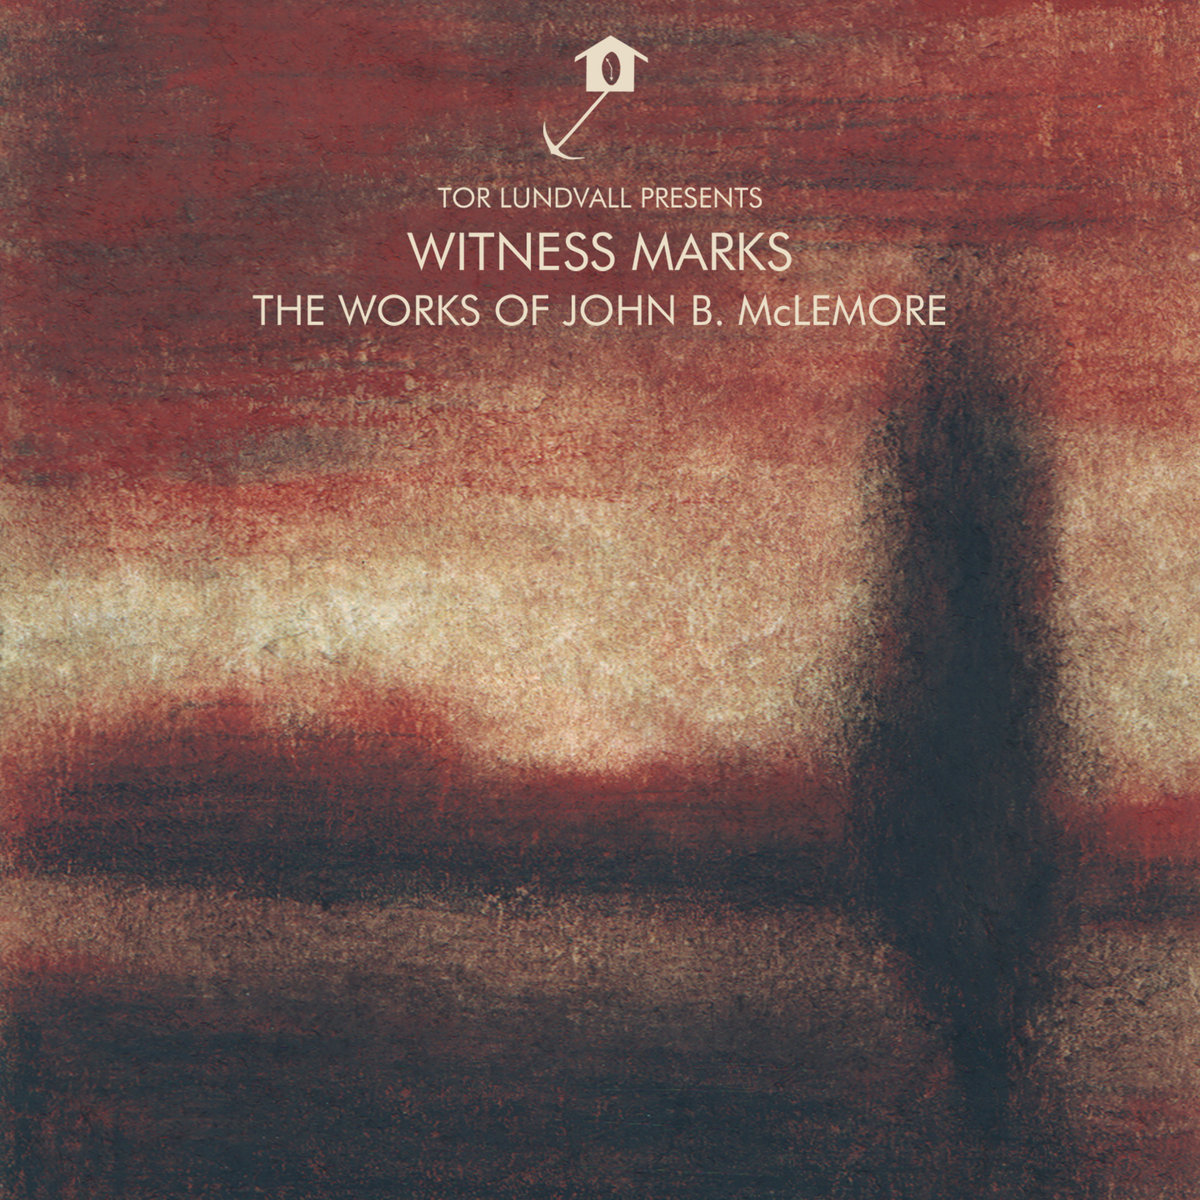 Tor Lundvall Presents: Witness Marks - The Works of John B